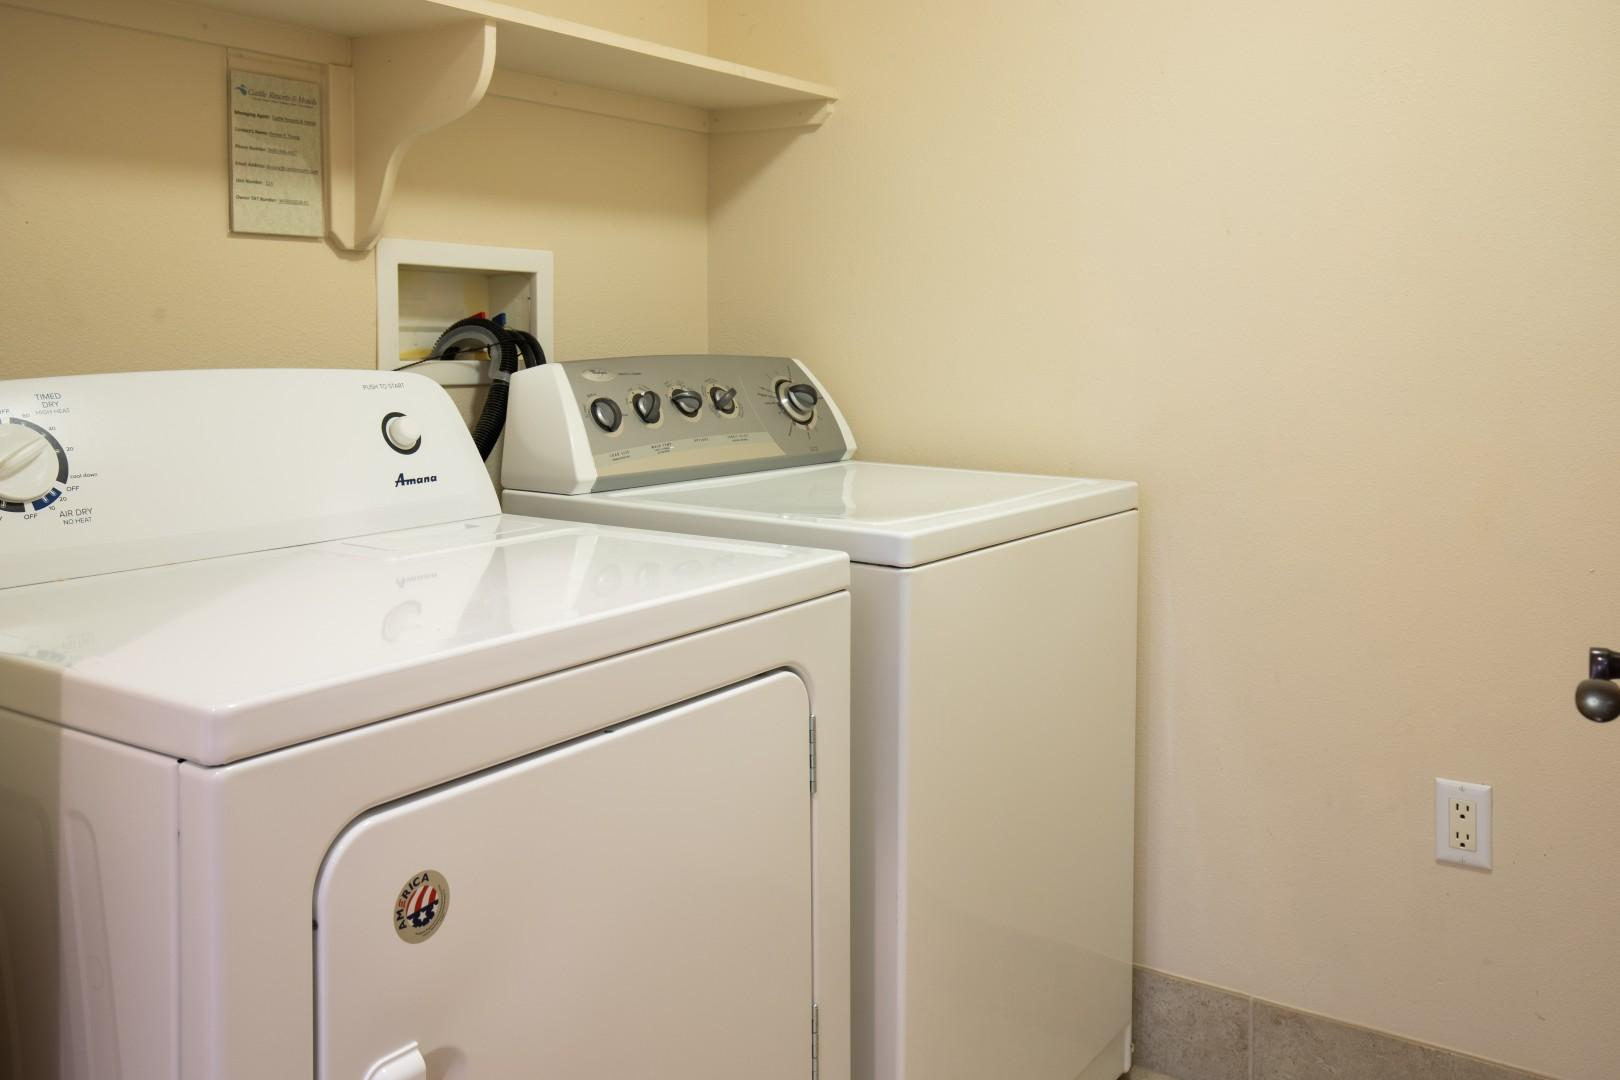 Utilize the full size washer and dryer during your stay.